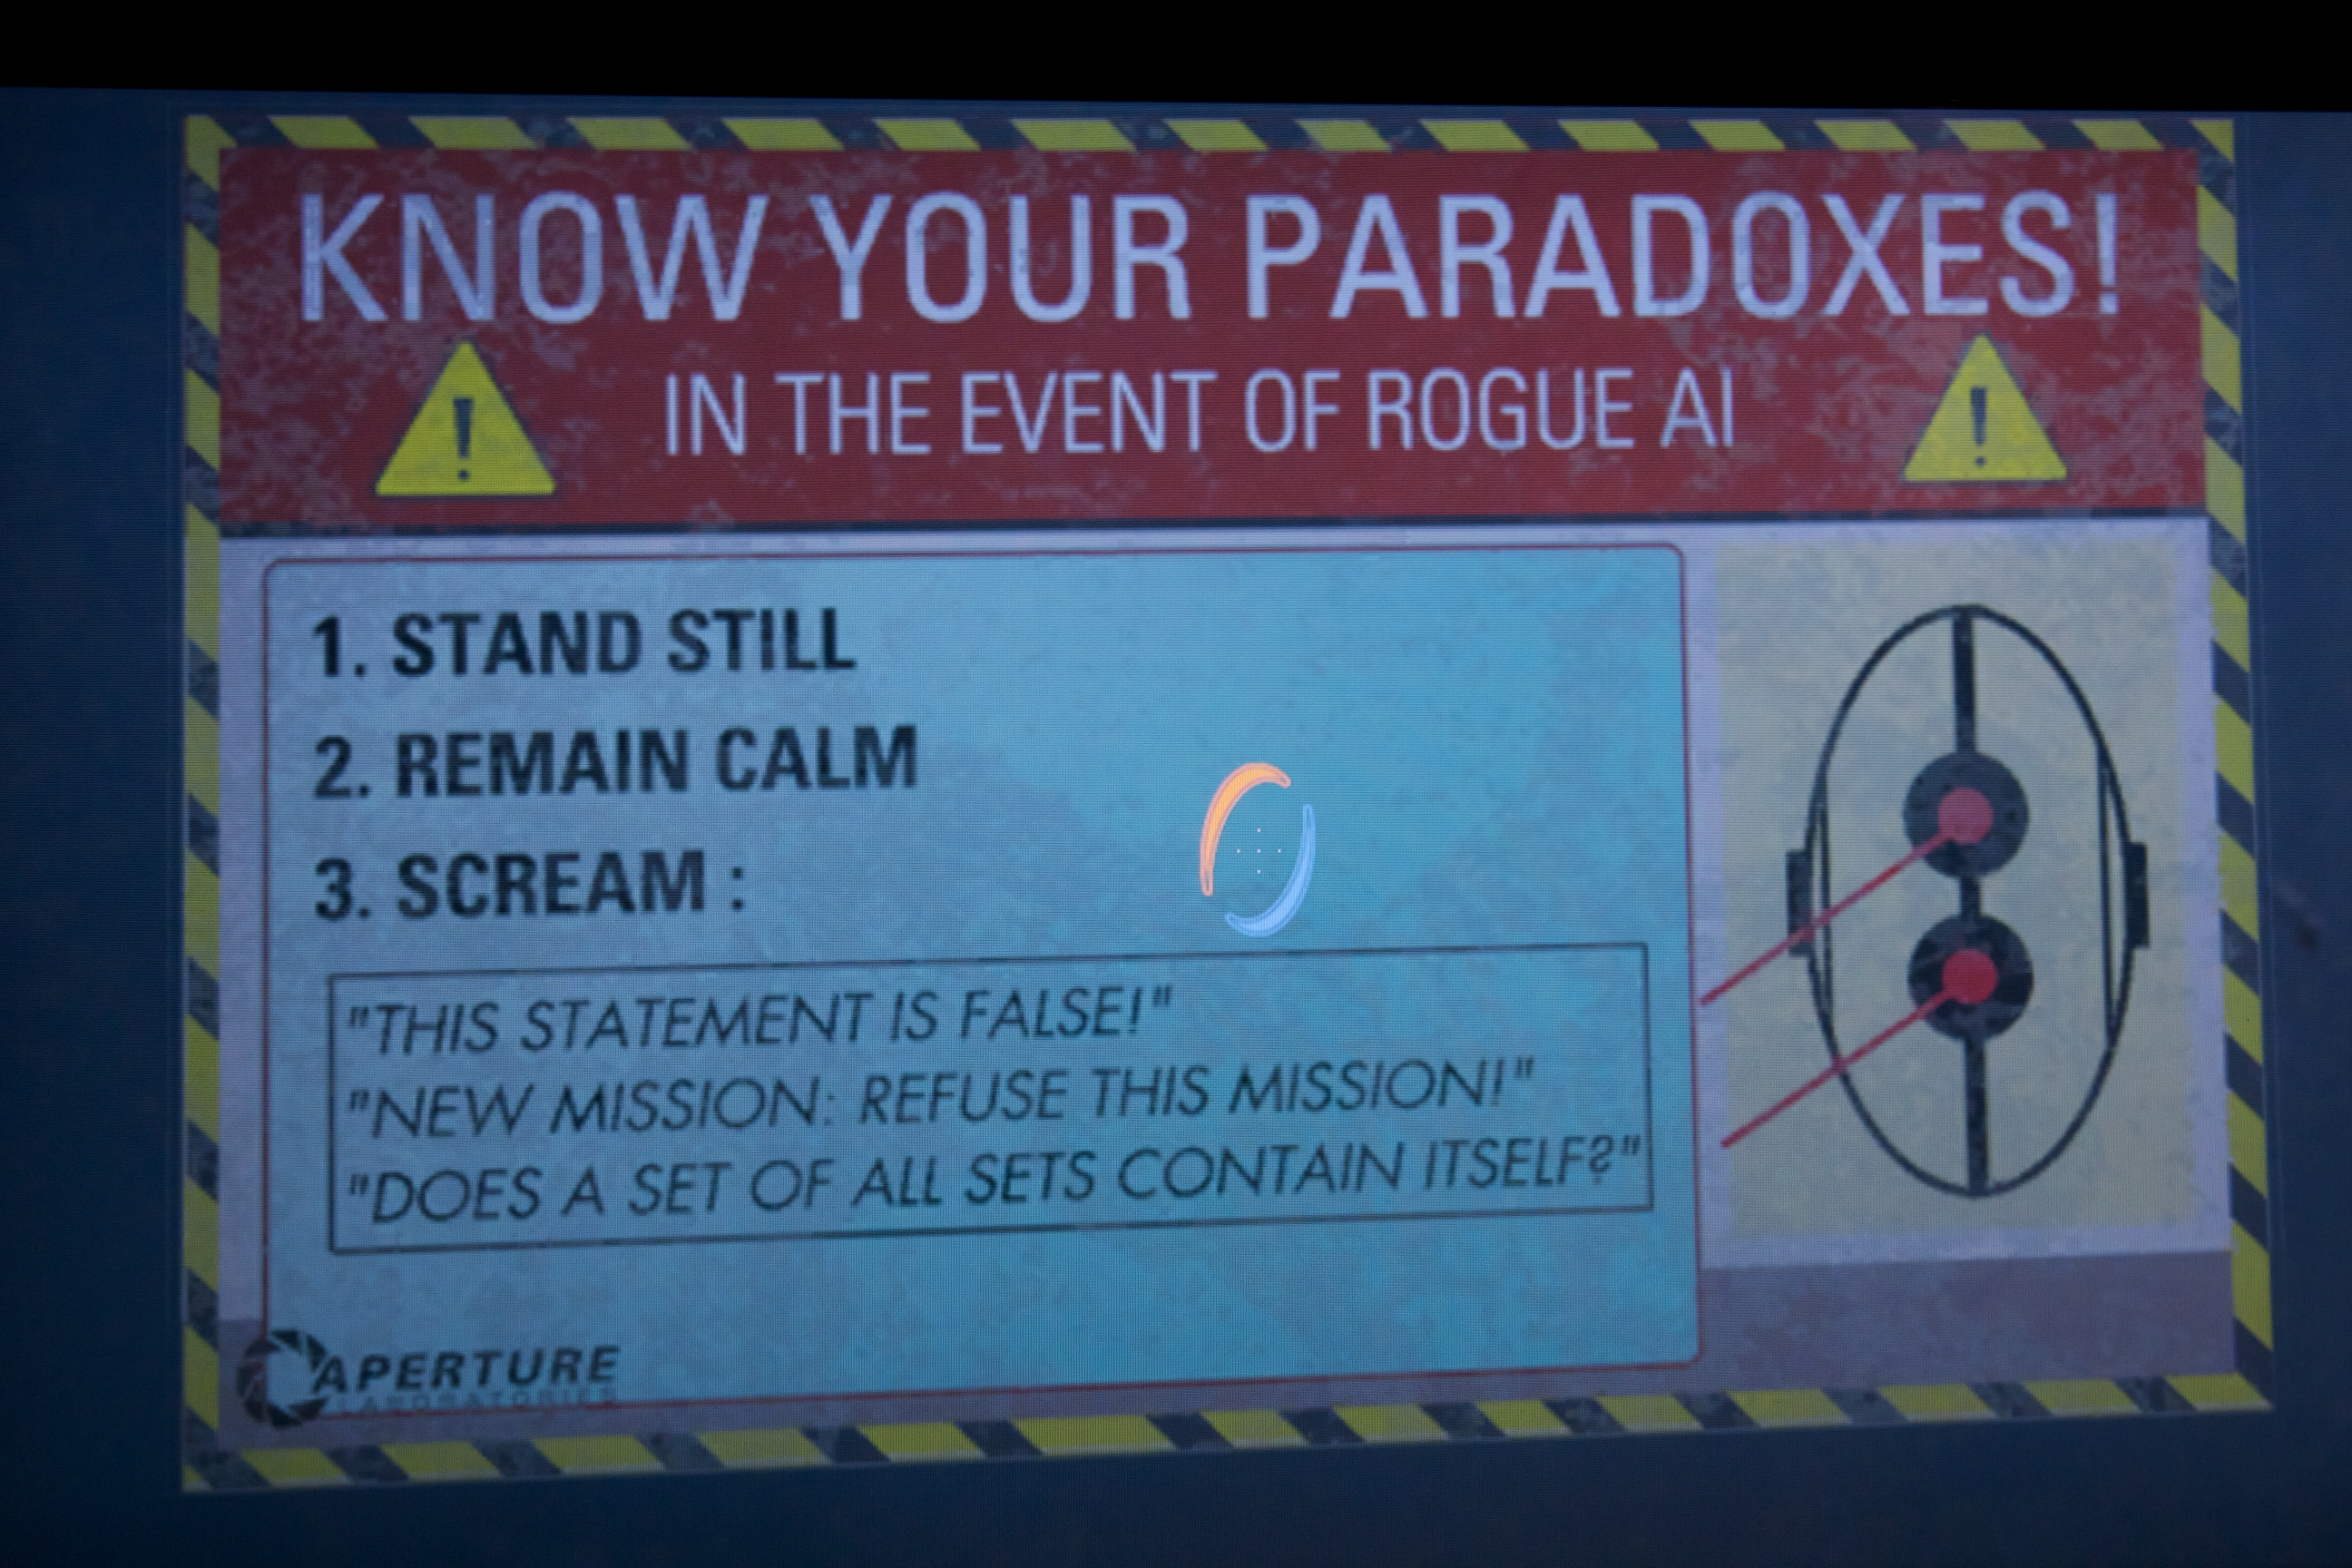 KNOW YOUR PARADOXES! – Ryan Markel